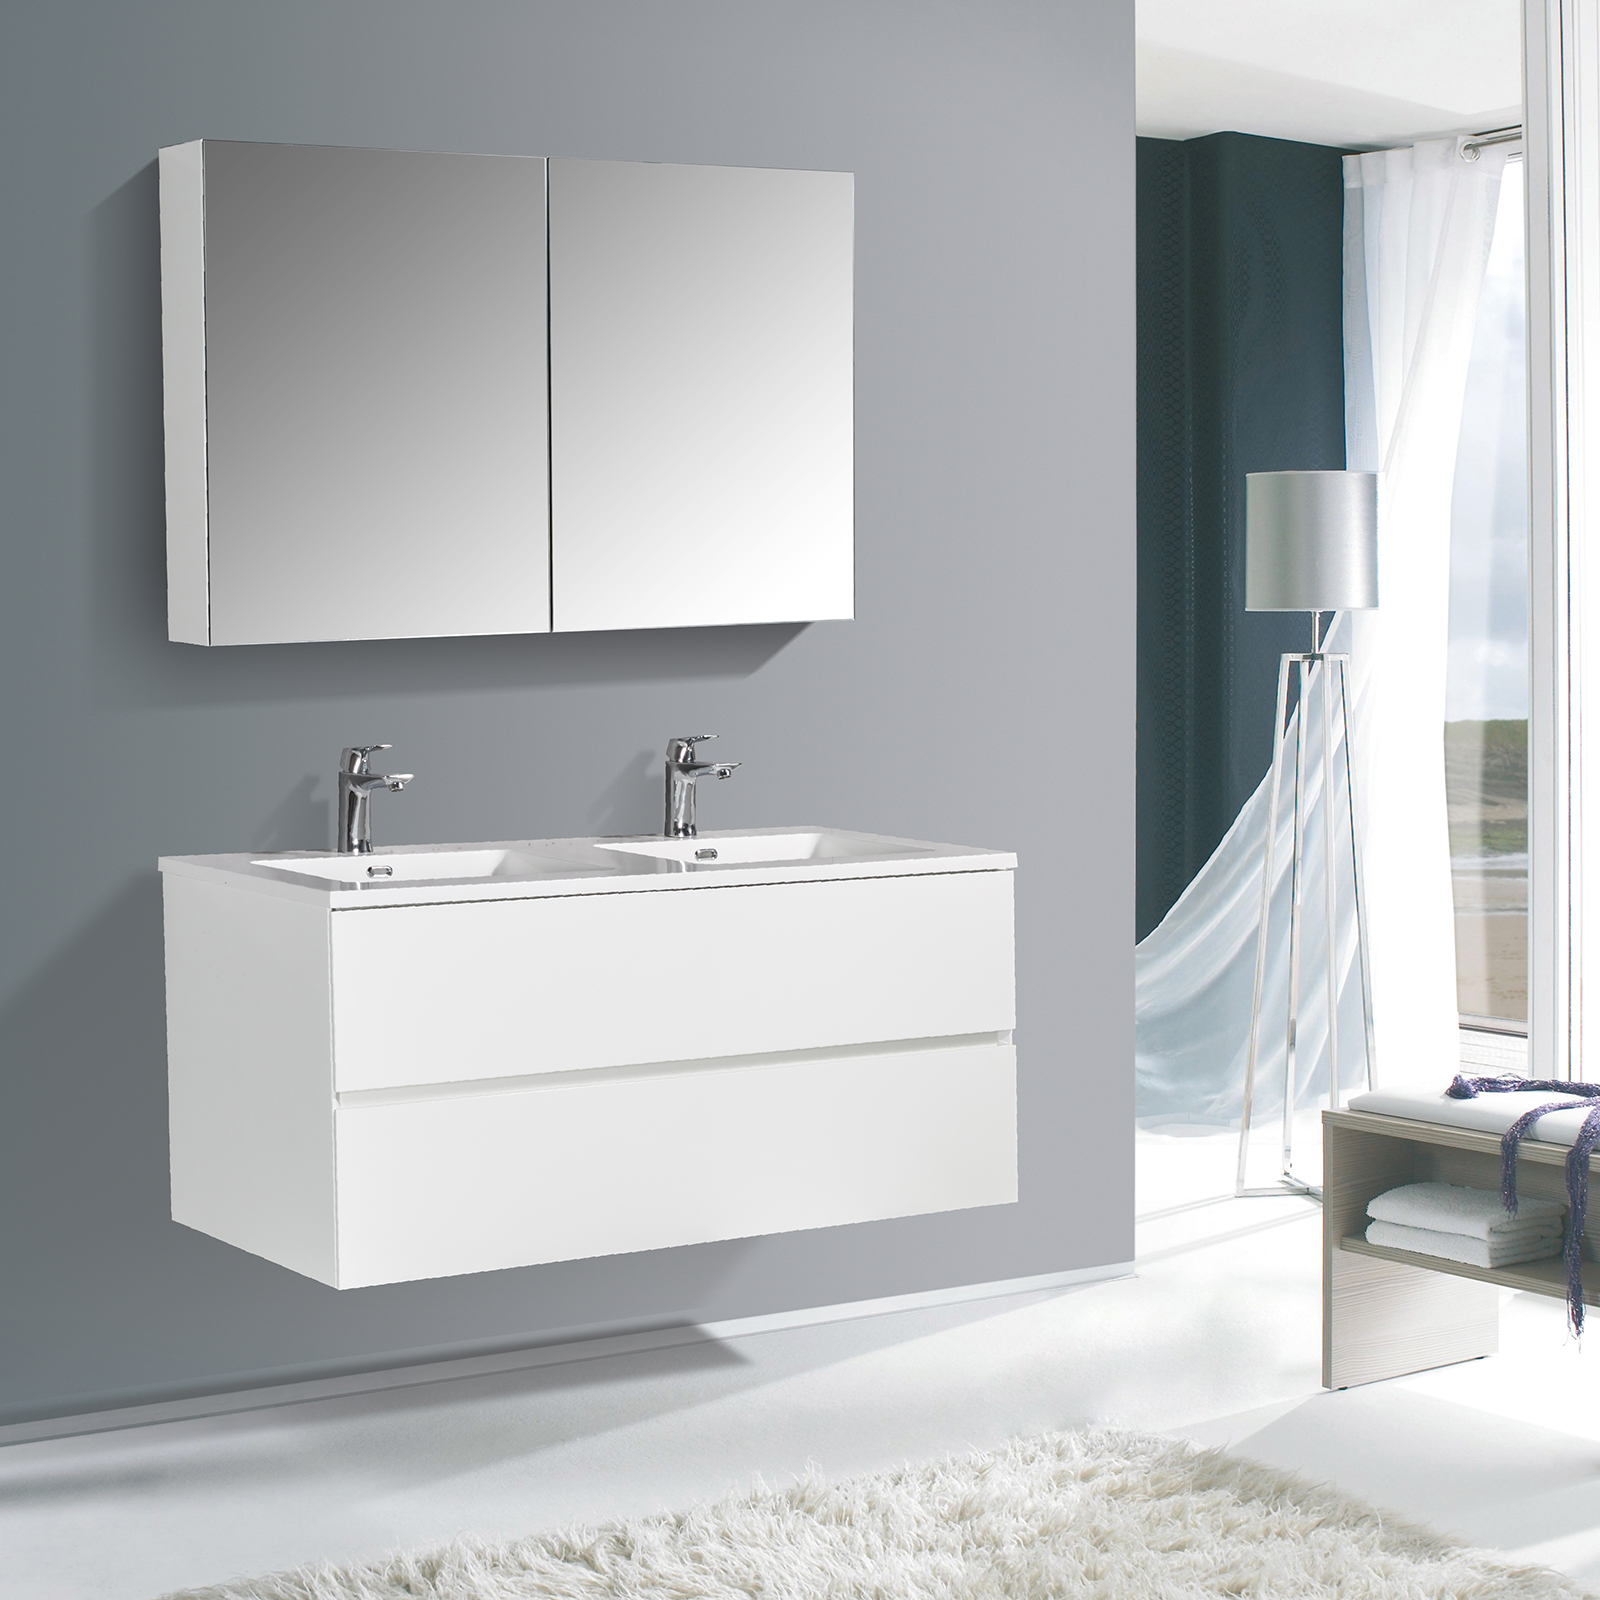 Bathroom Furniture Set EDGE 1200 - available in different colours - optional mirror cabinet and Storage Unit